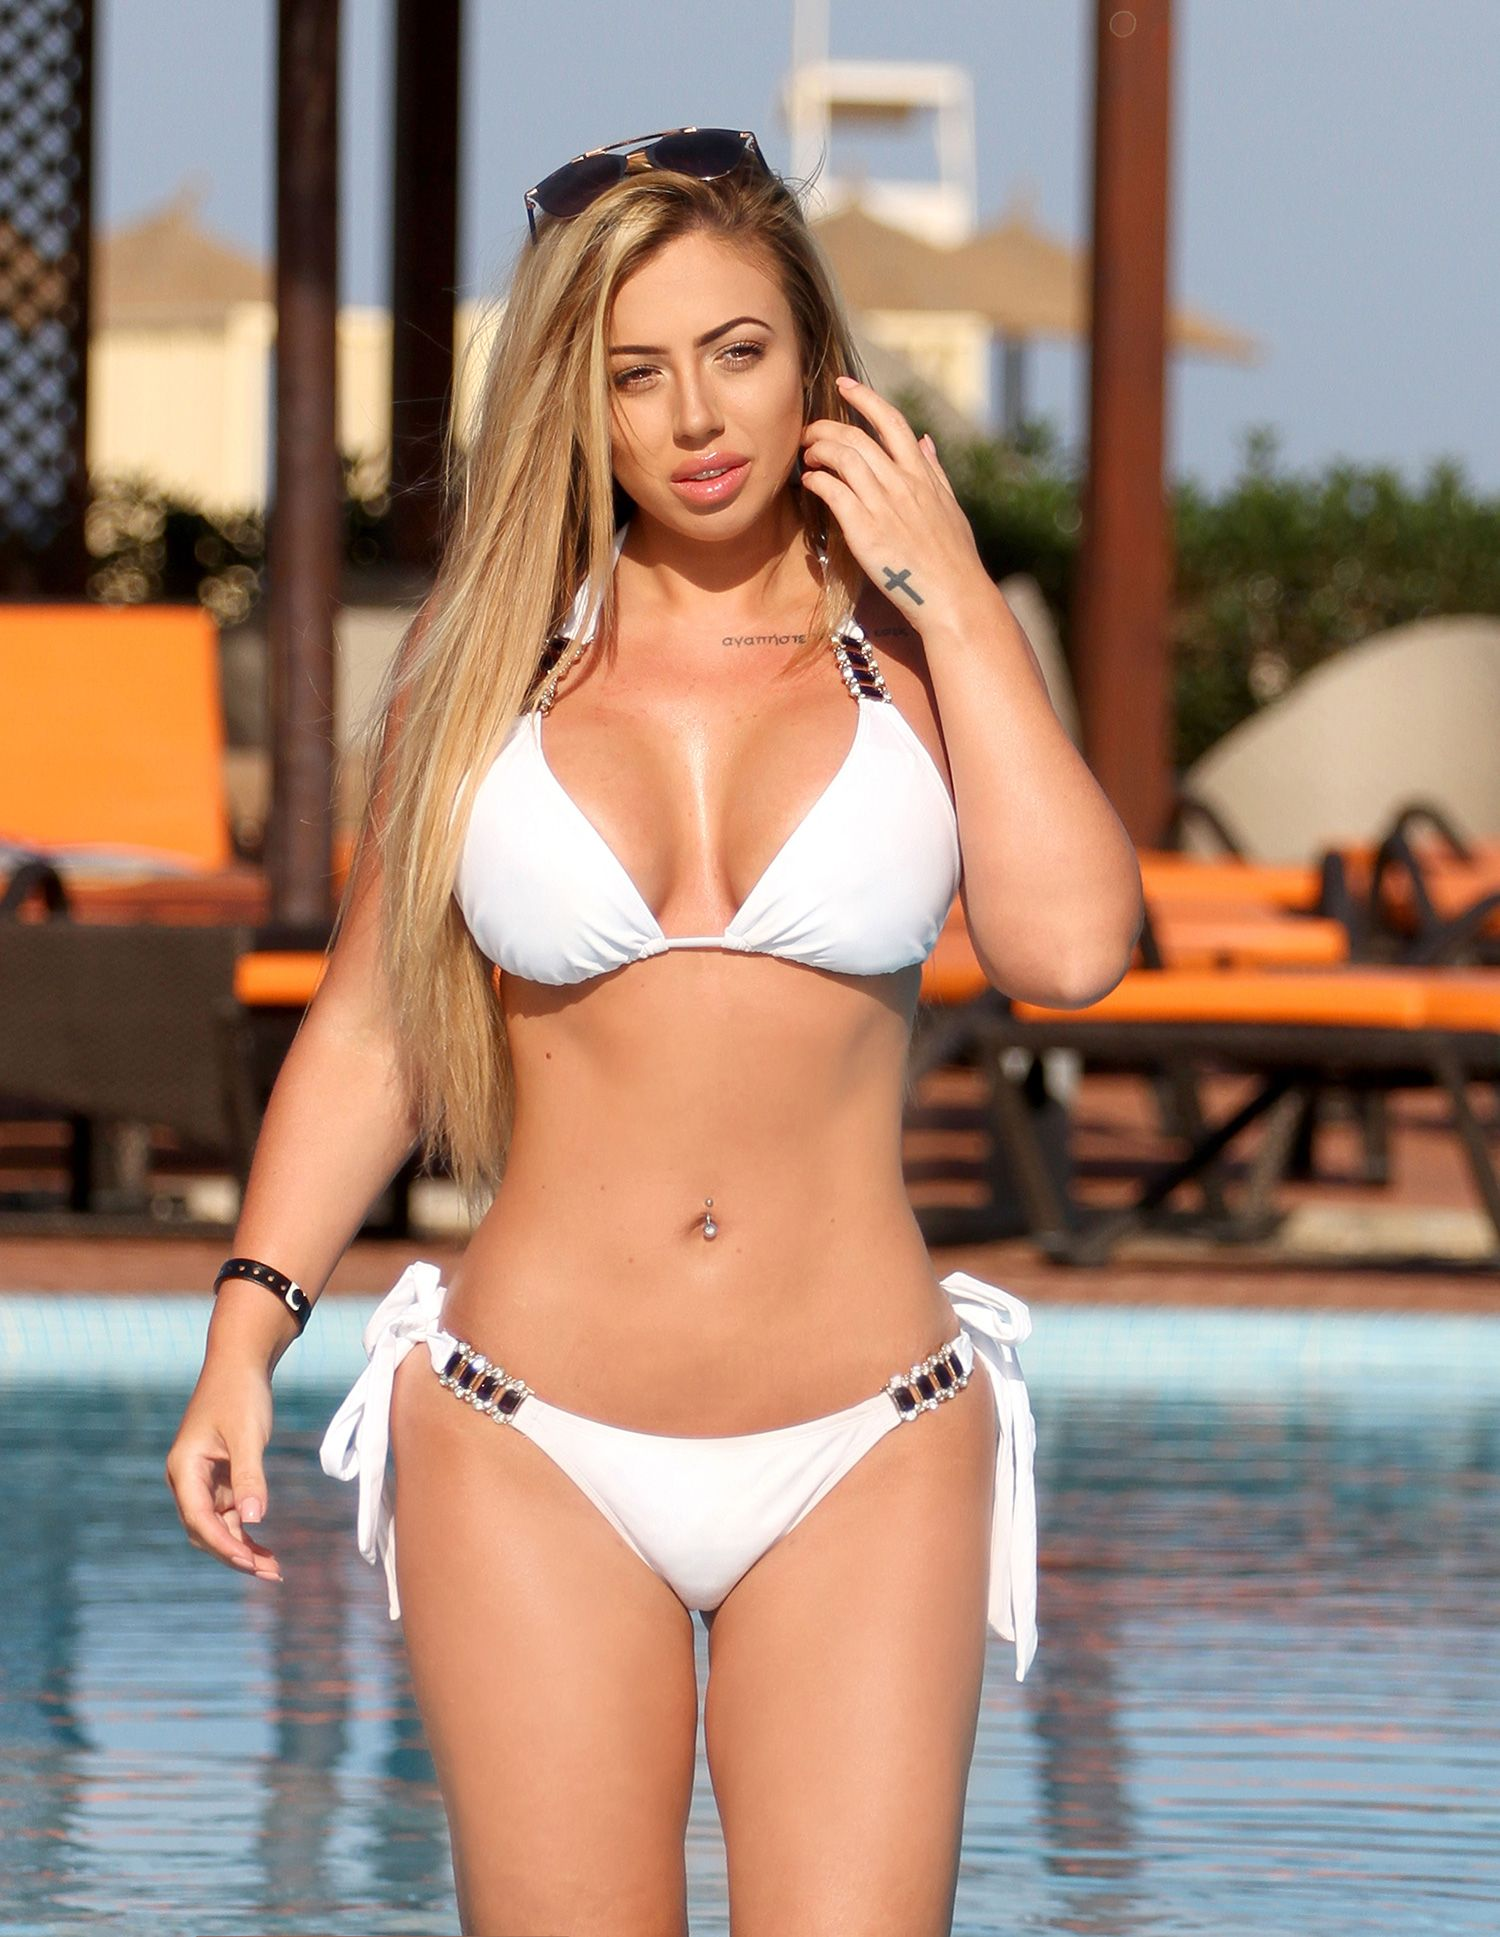 b12f304445 TUDE PRESS (PICTURED - SEXY HOLLY SHOWS OFF HER RECENT WEIGHT LOSS BIKINI  BODY) STUNNING Holly Hagan sizzled at the poolside as she gave hotel guests  an eye ...